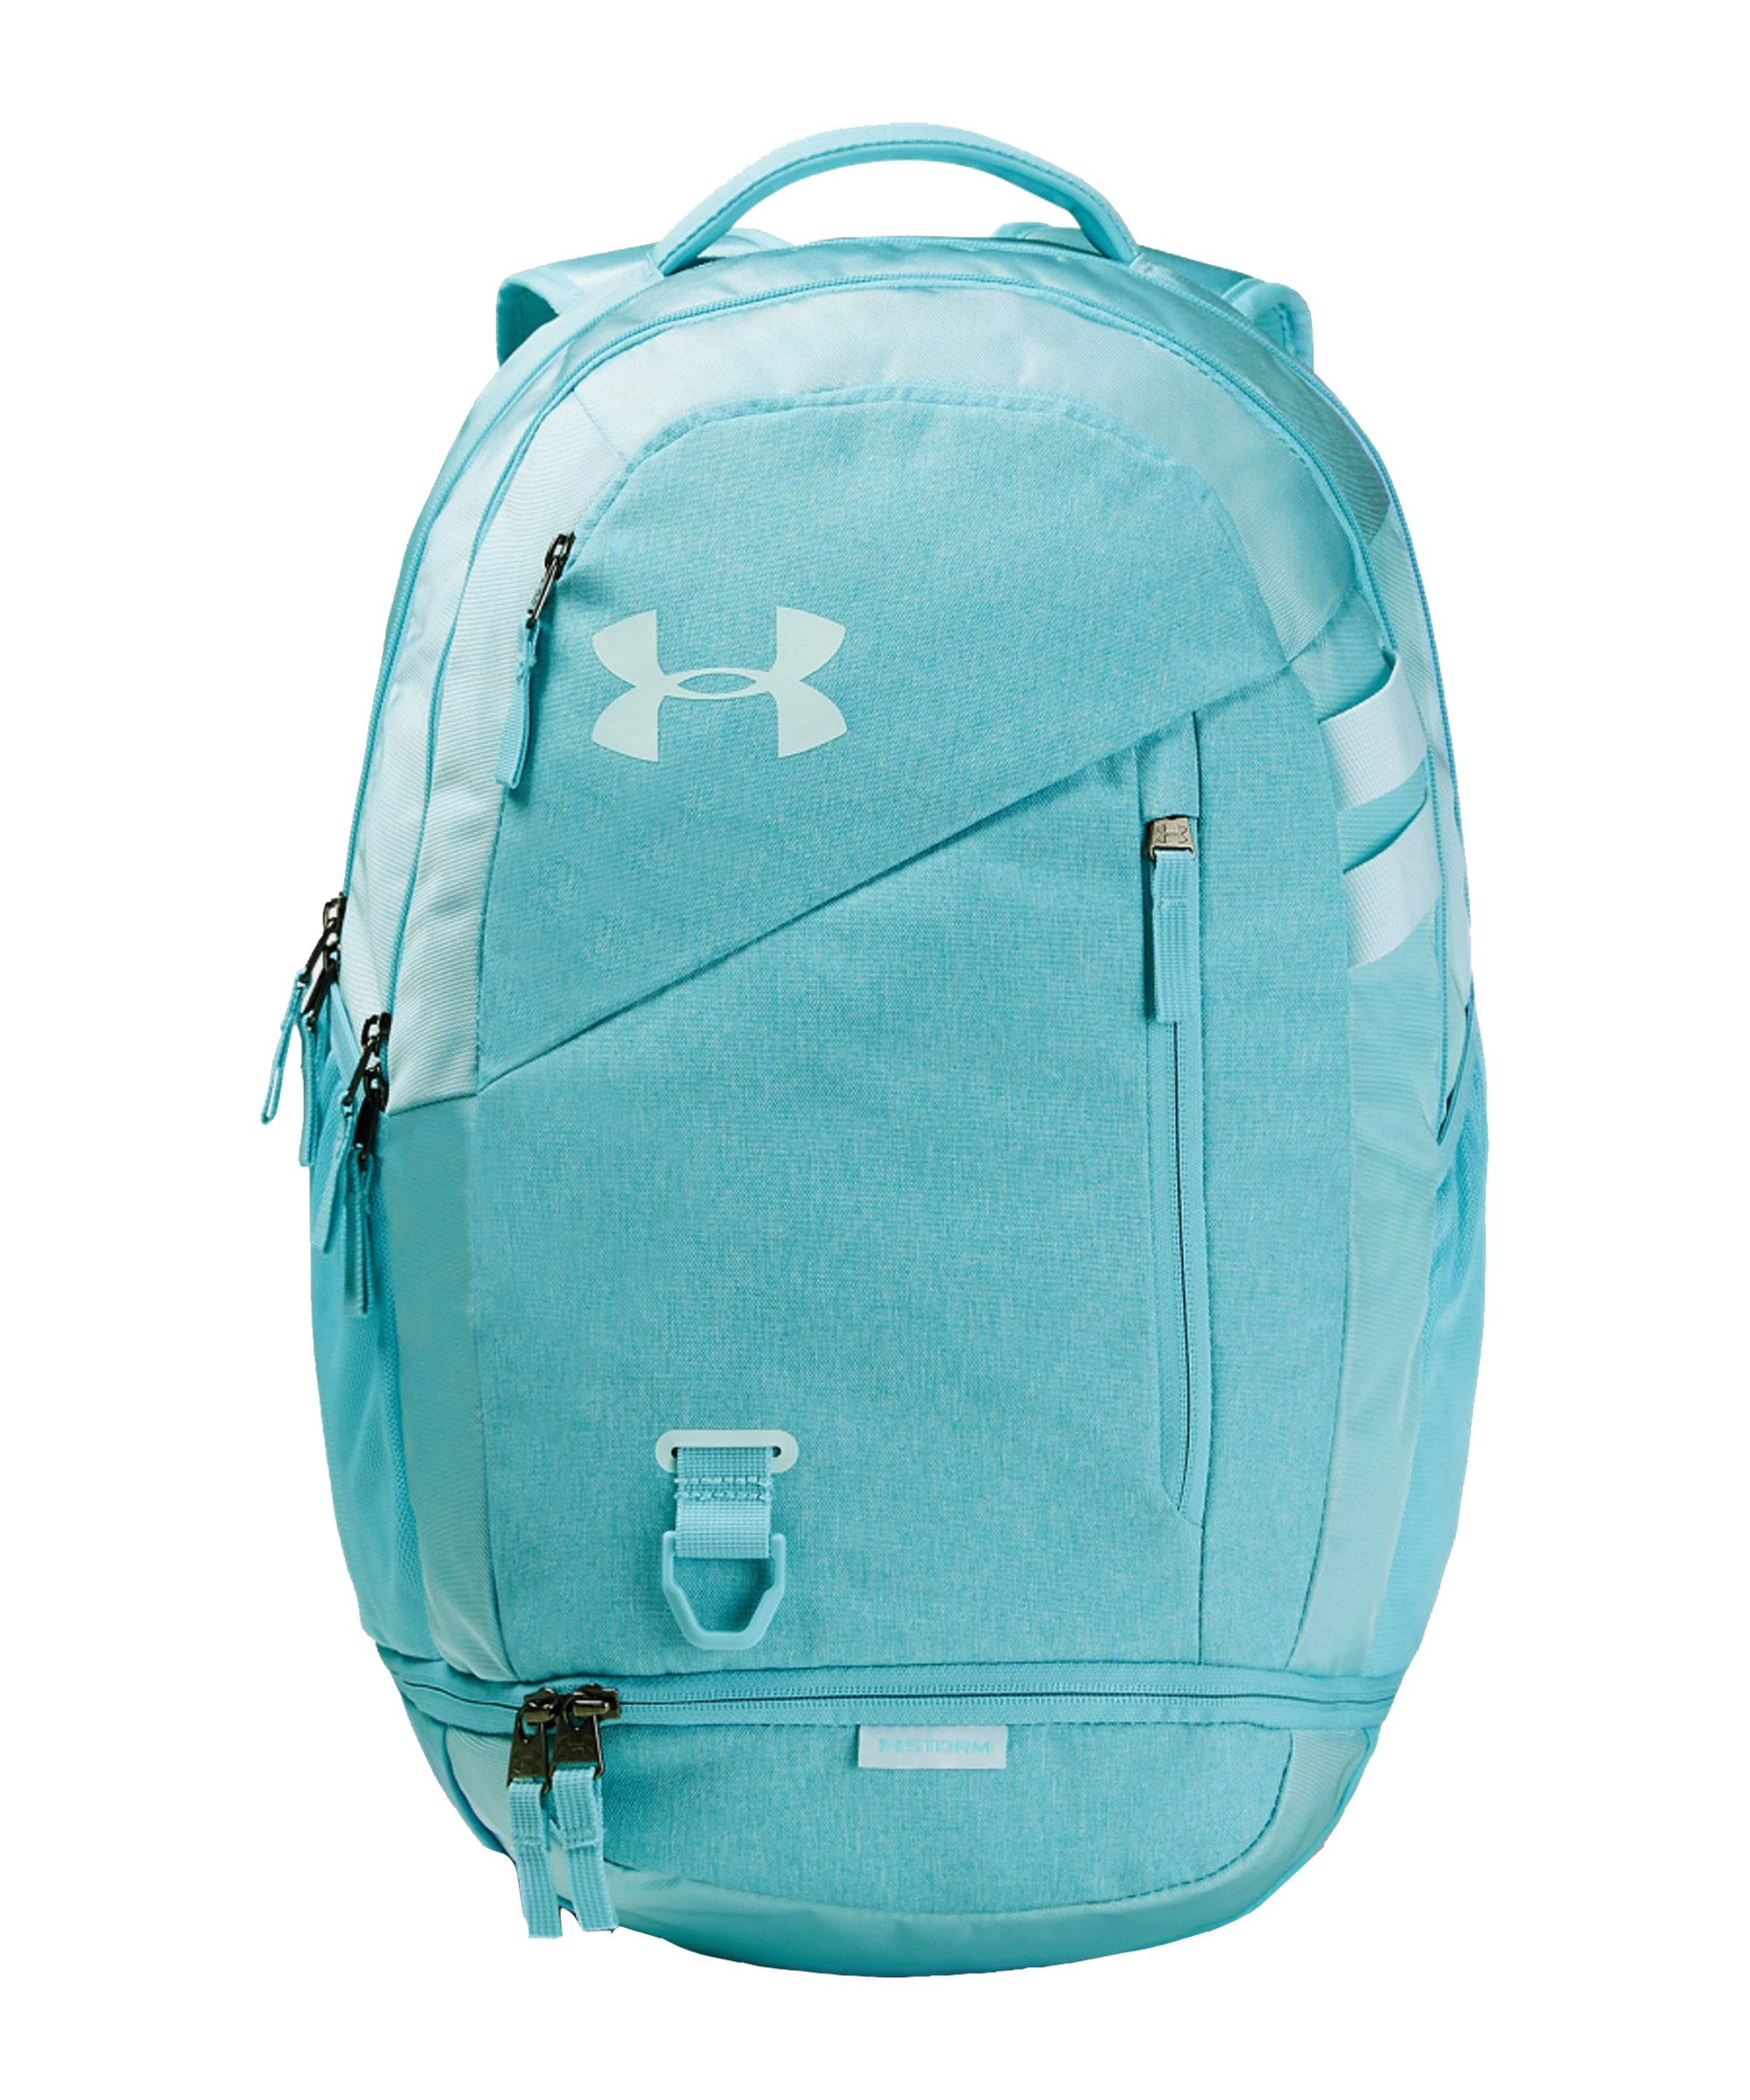 Under Armour Hustle 4.0 Rucksack Blau F425 - blau